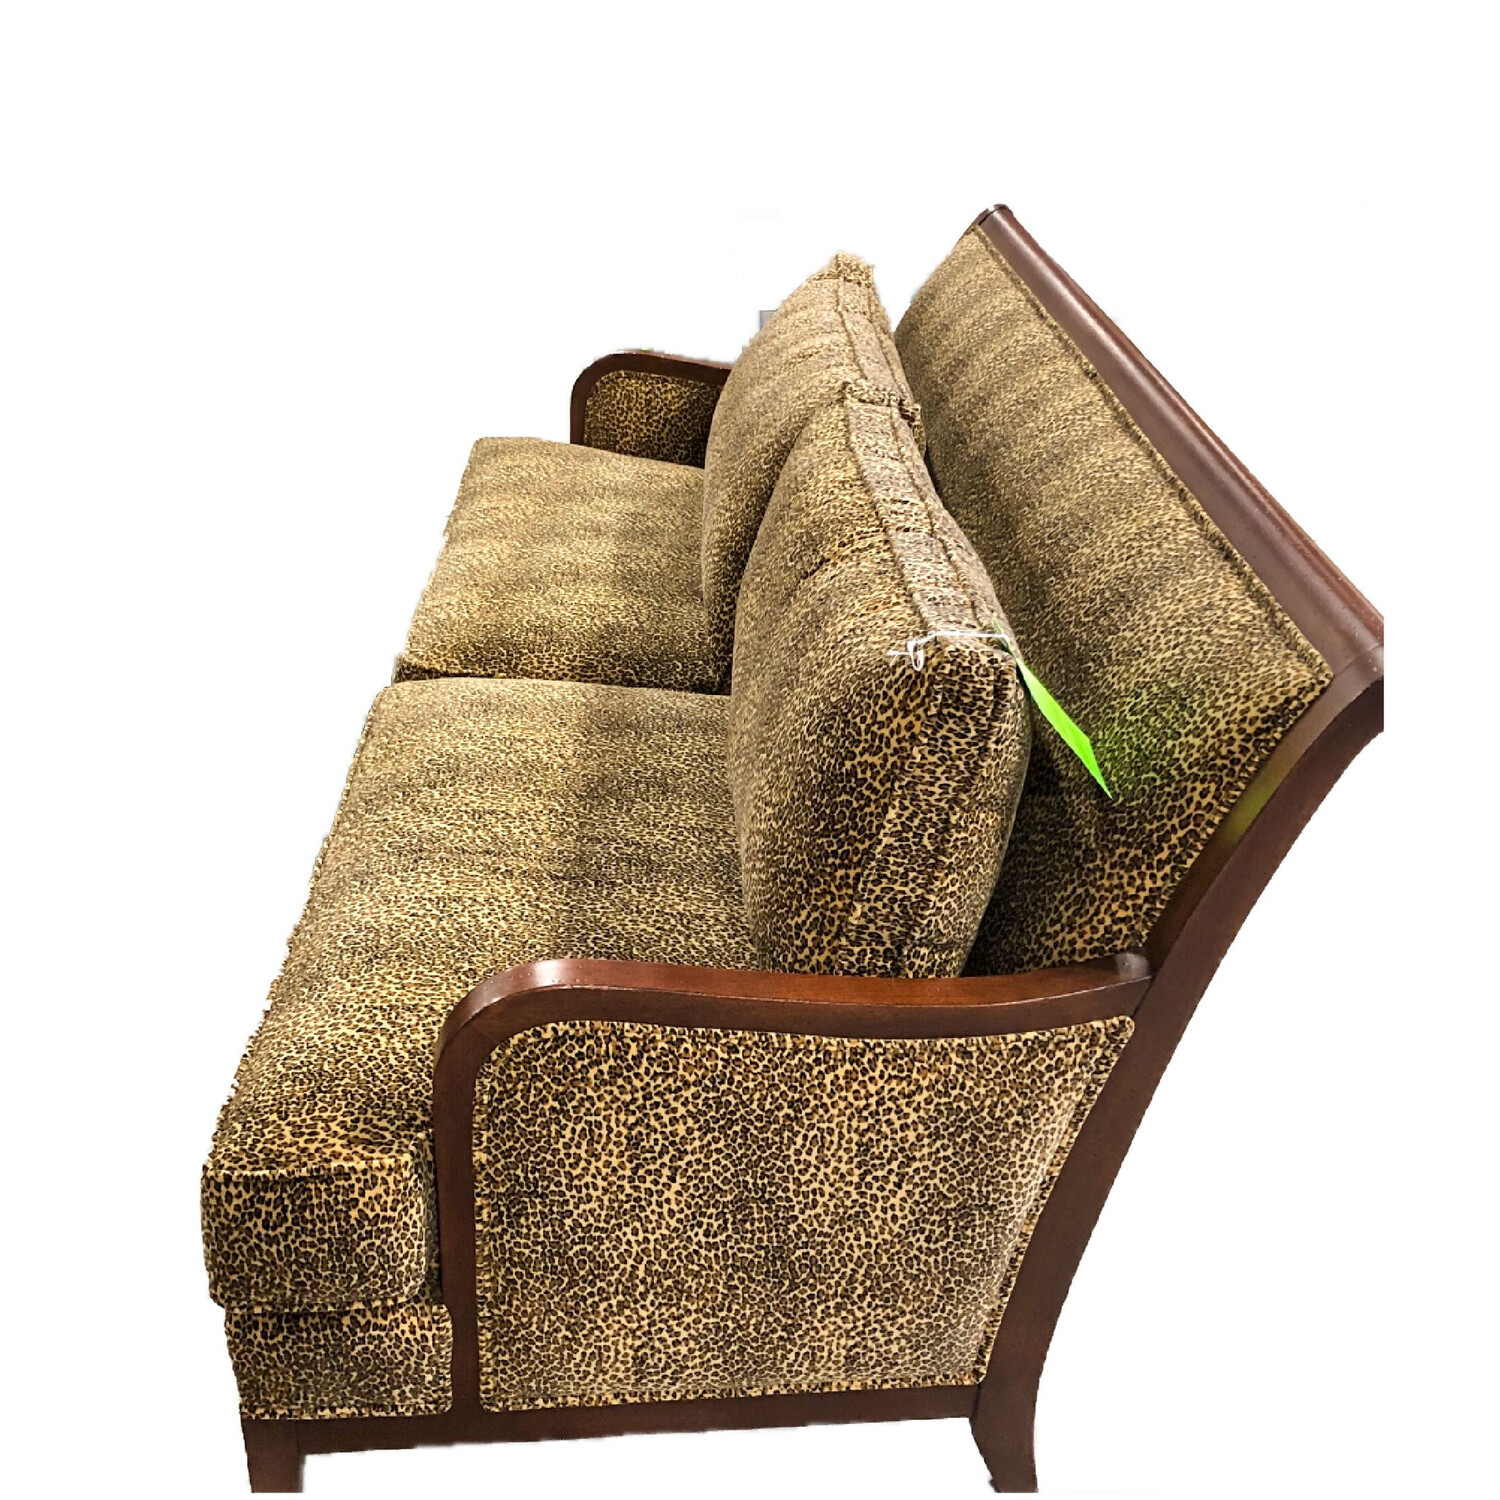 Ethan & Allen Leopard Print Couch with wood trim